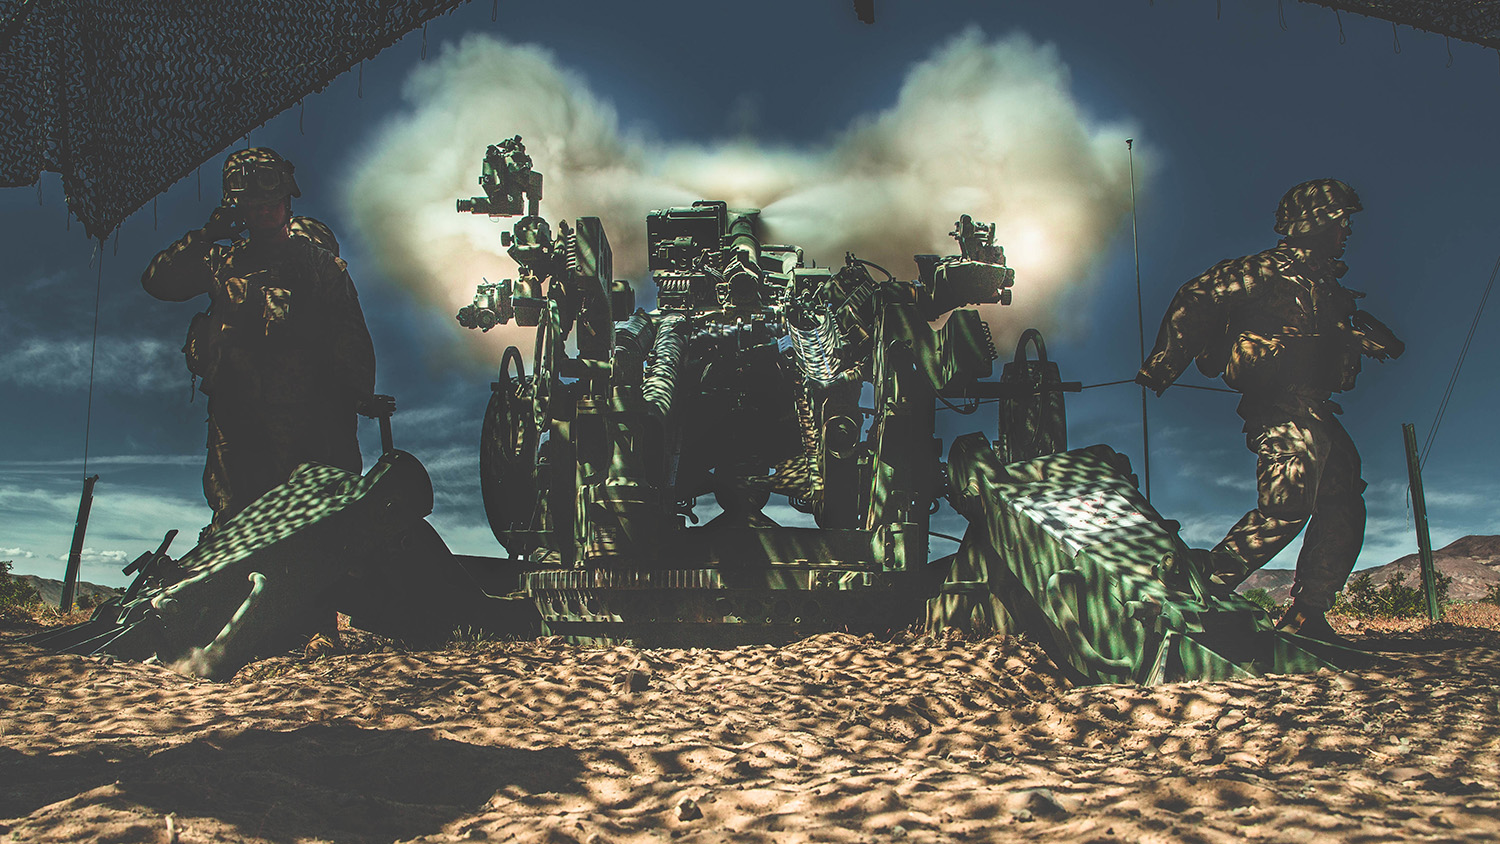 Marines conduct fire missions with the M777 Howitzer at Marine Corps Air Ground Combat Center, Twentynine Palms, Calif., April. 4, 2019. (Lance Cpl. William Chockey/Marine Corps)